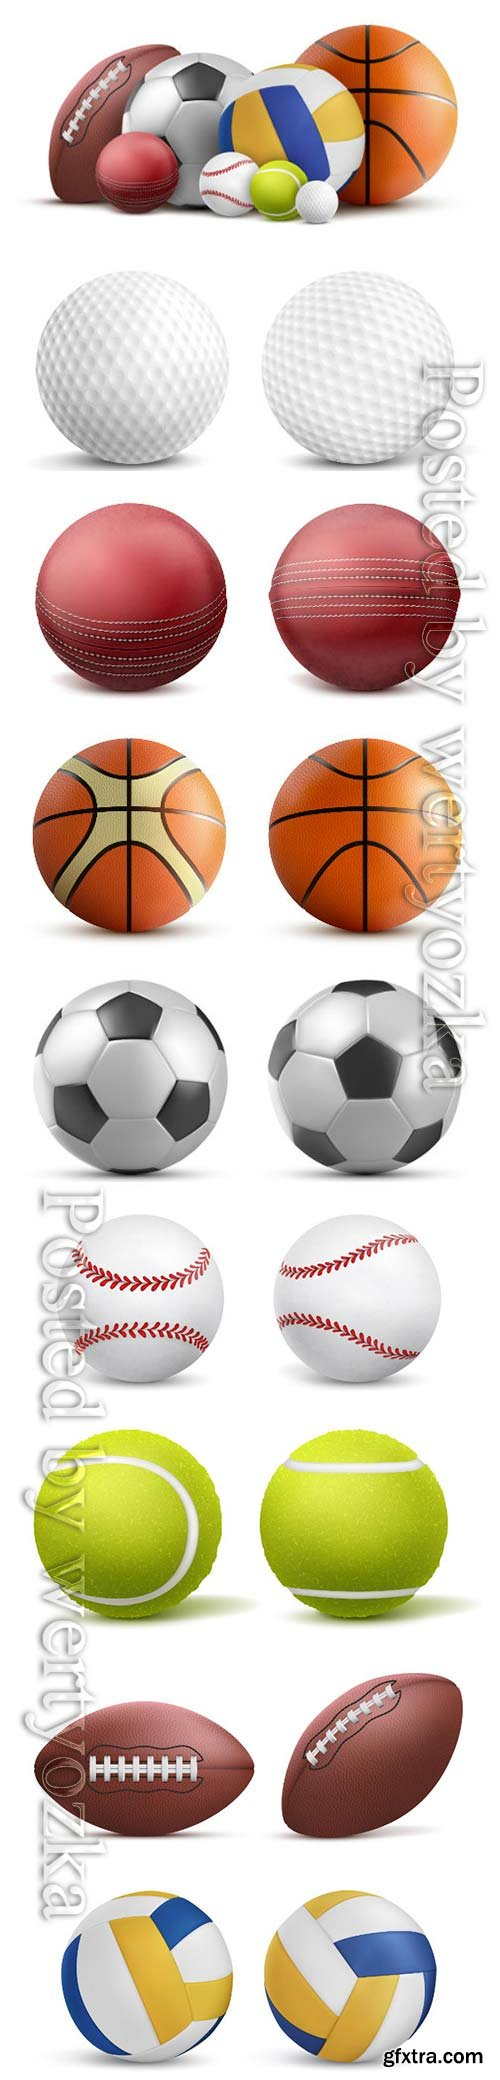 Sports balls, soccer, volleyball, baseball, tennis, golf, rugby vector template design